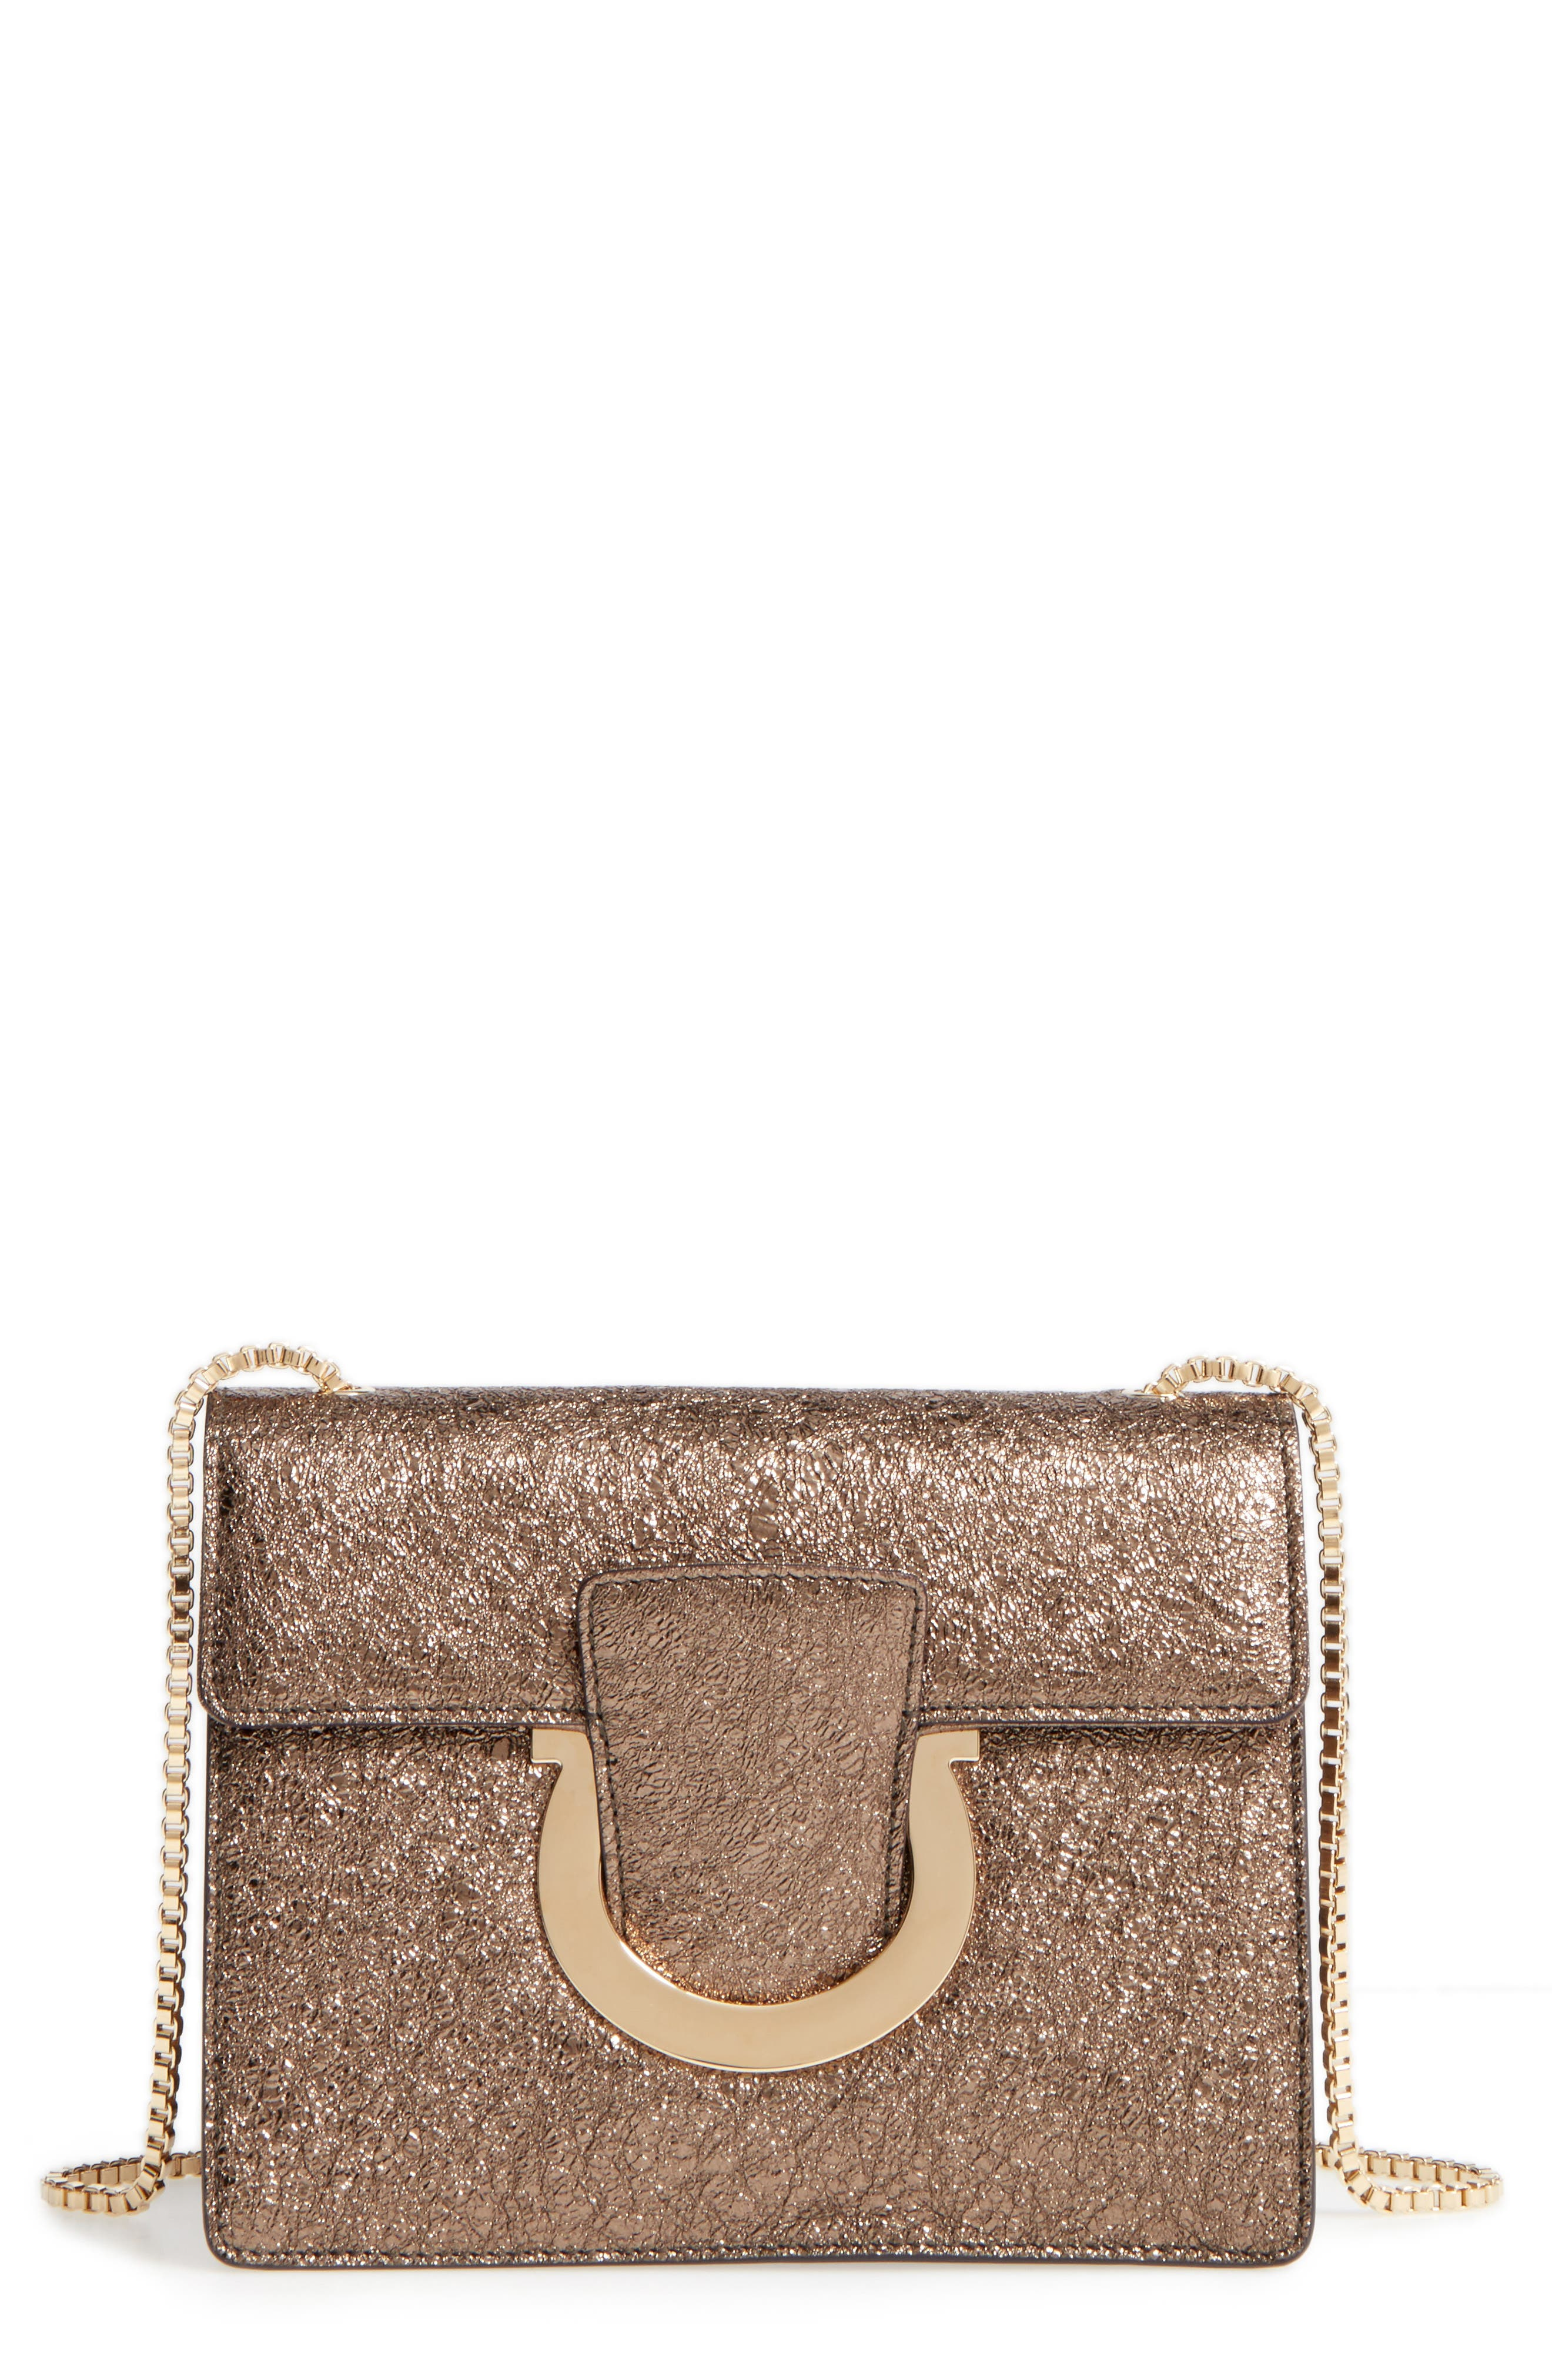 Alternate Image 1 Selected - Salvatore Ferragamo Small Metallic Leather Chain Shoulder Bag